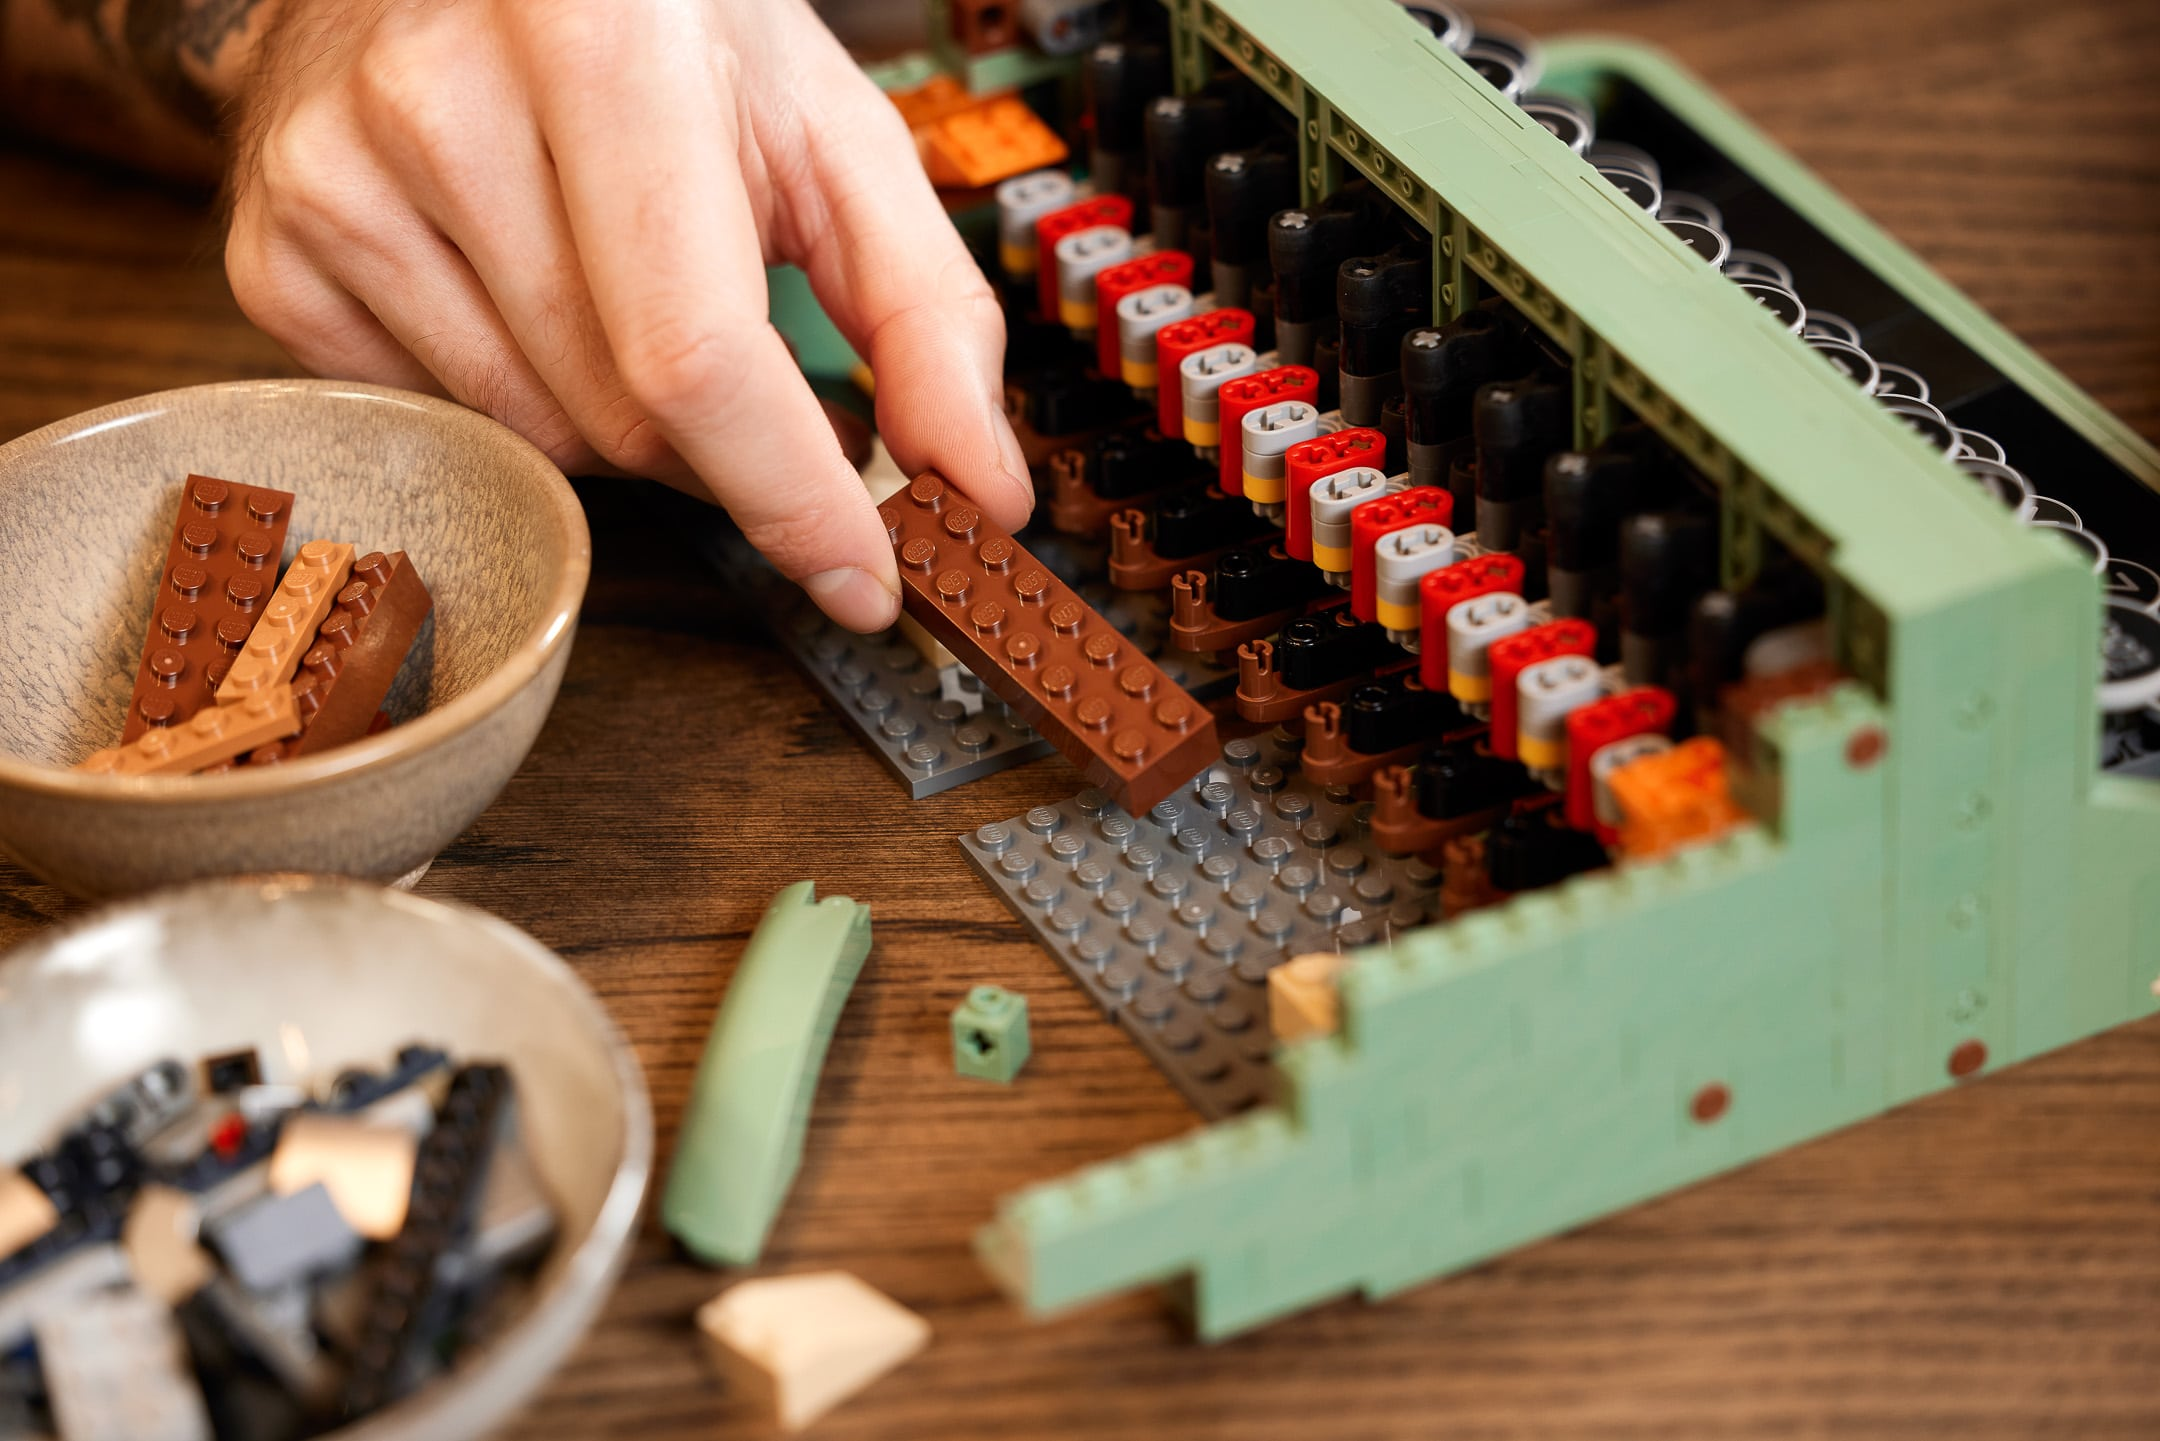 LEGO unveils a typewriter set with moving keys and carriage 19